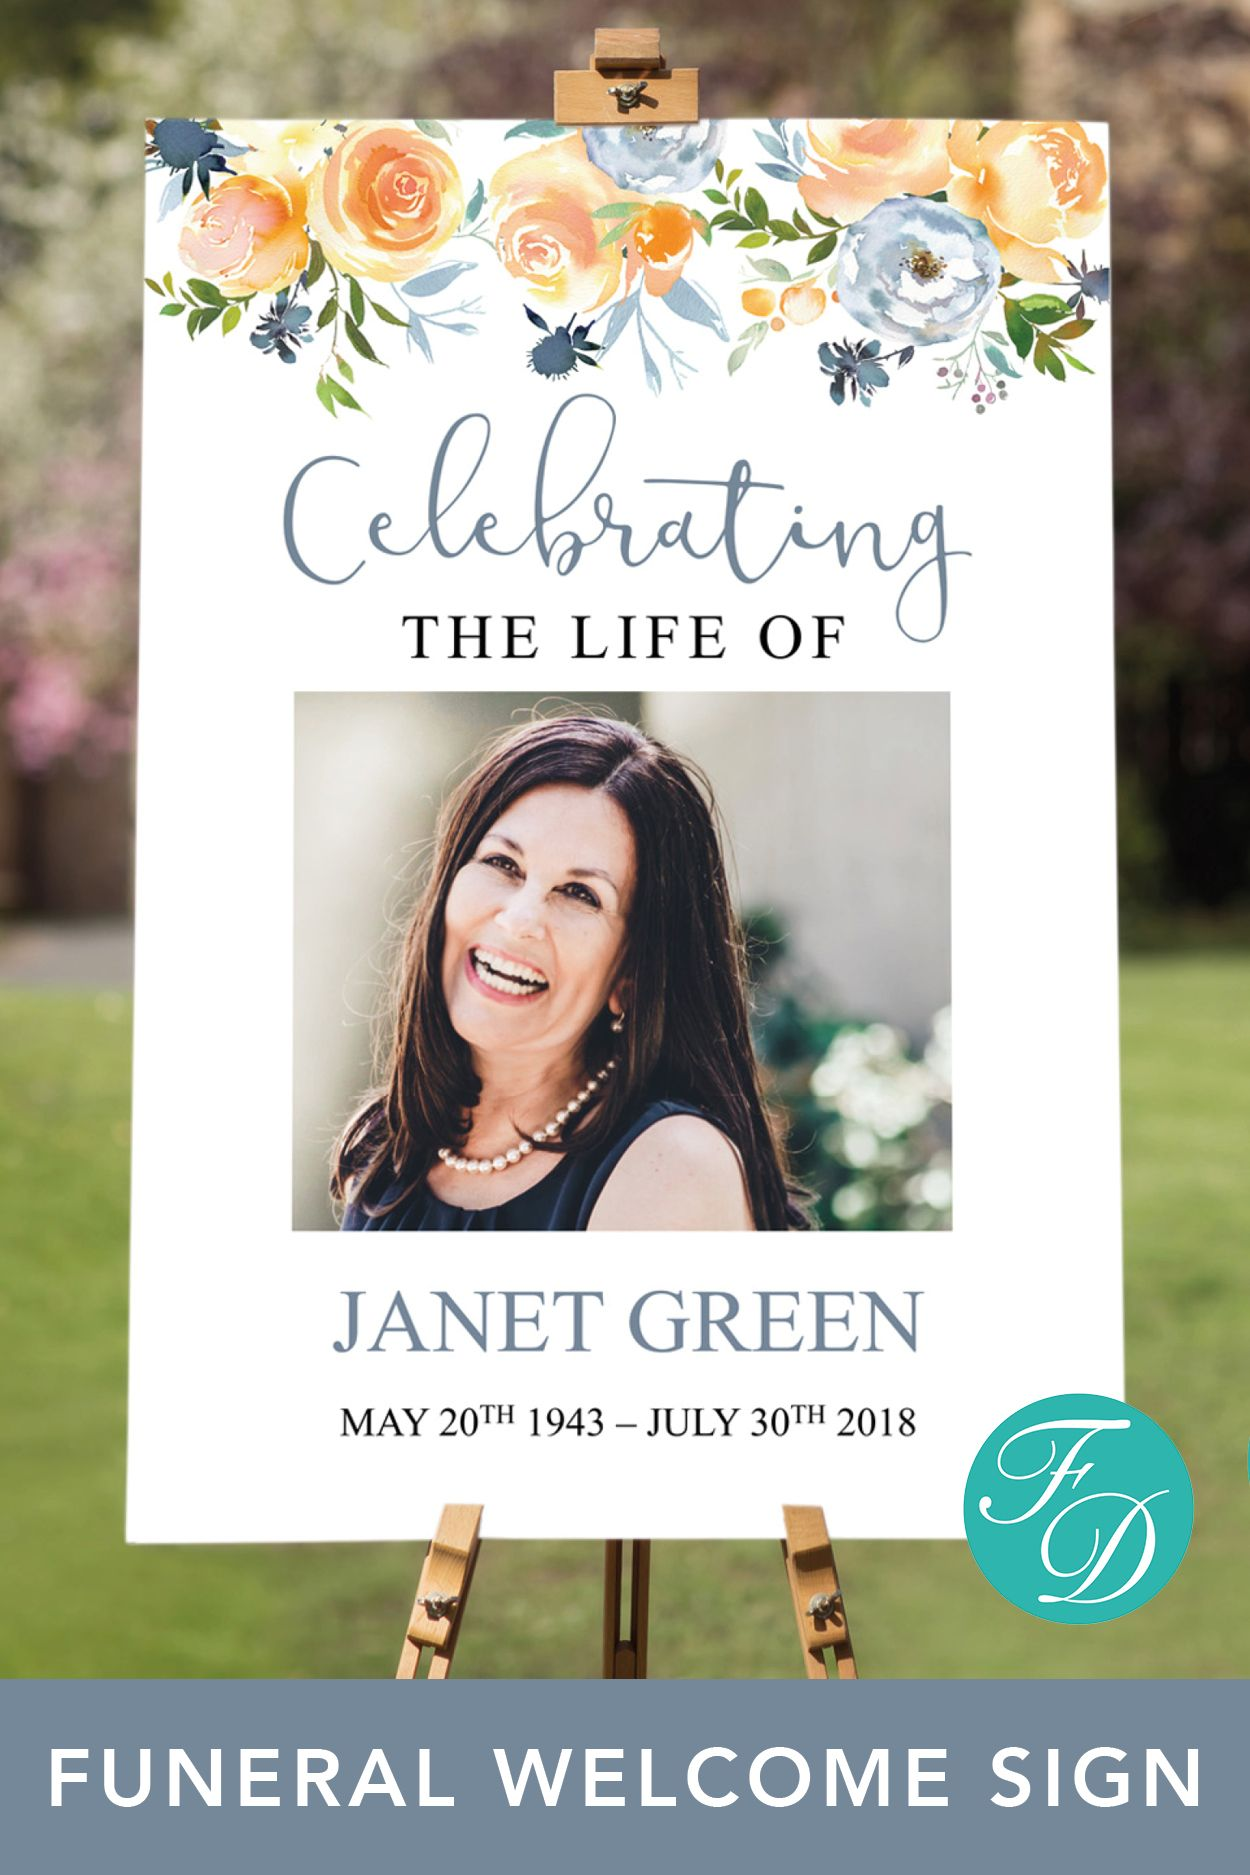 Celebration Of Life Poster Funeral Welcome Sign Celebration Of